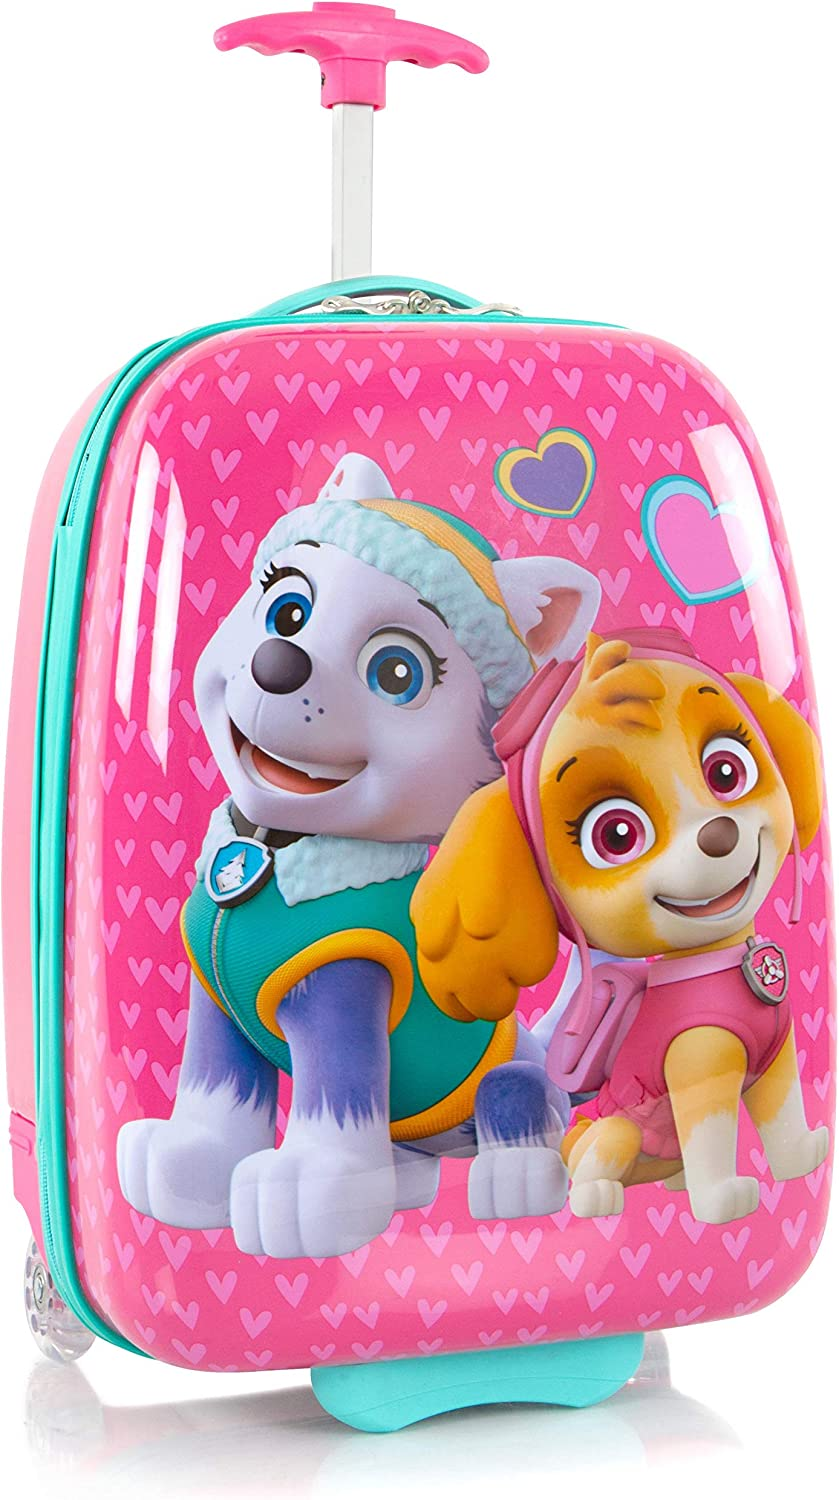 Heys America Nickelodeon Paw Patrol Girls Carry-On Luggage